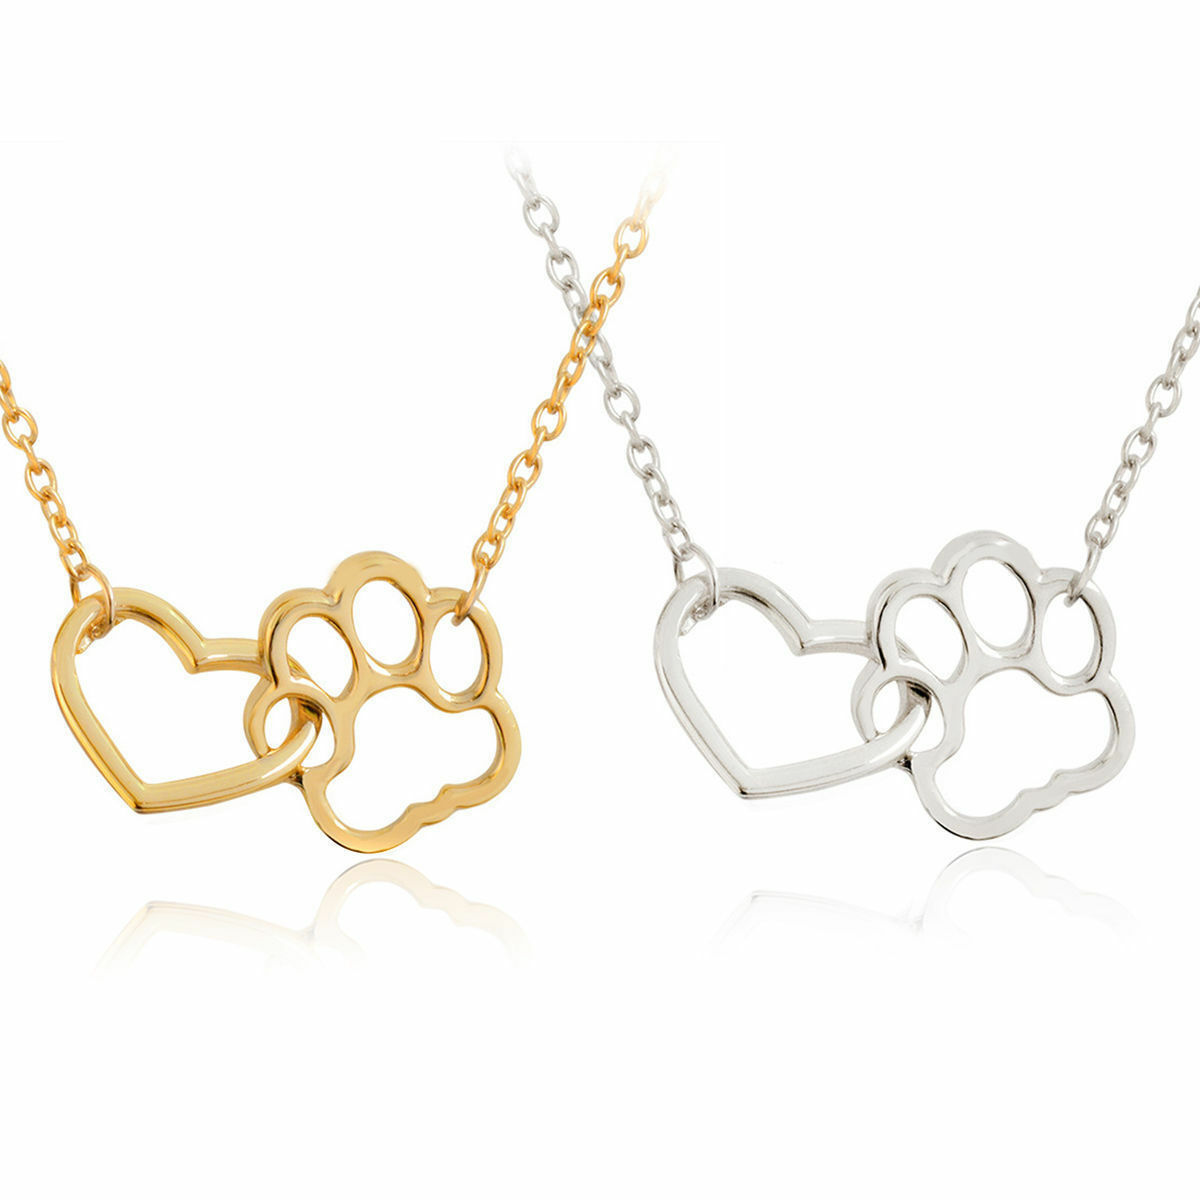 USA Women Fashion Pet Lover Dog Cat Paw Print Pendant Heart Necklace Chain Gift